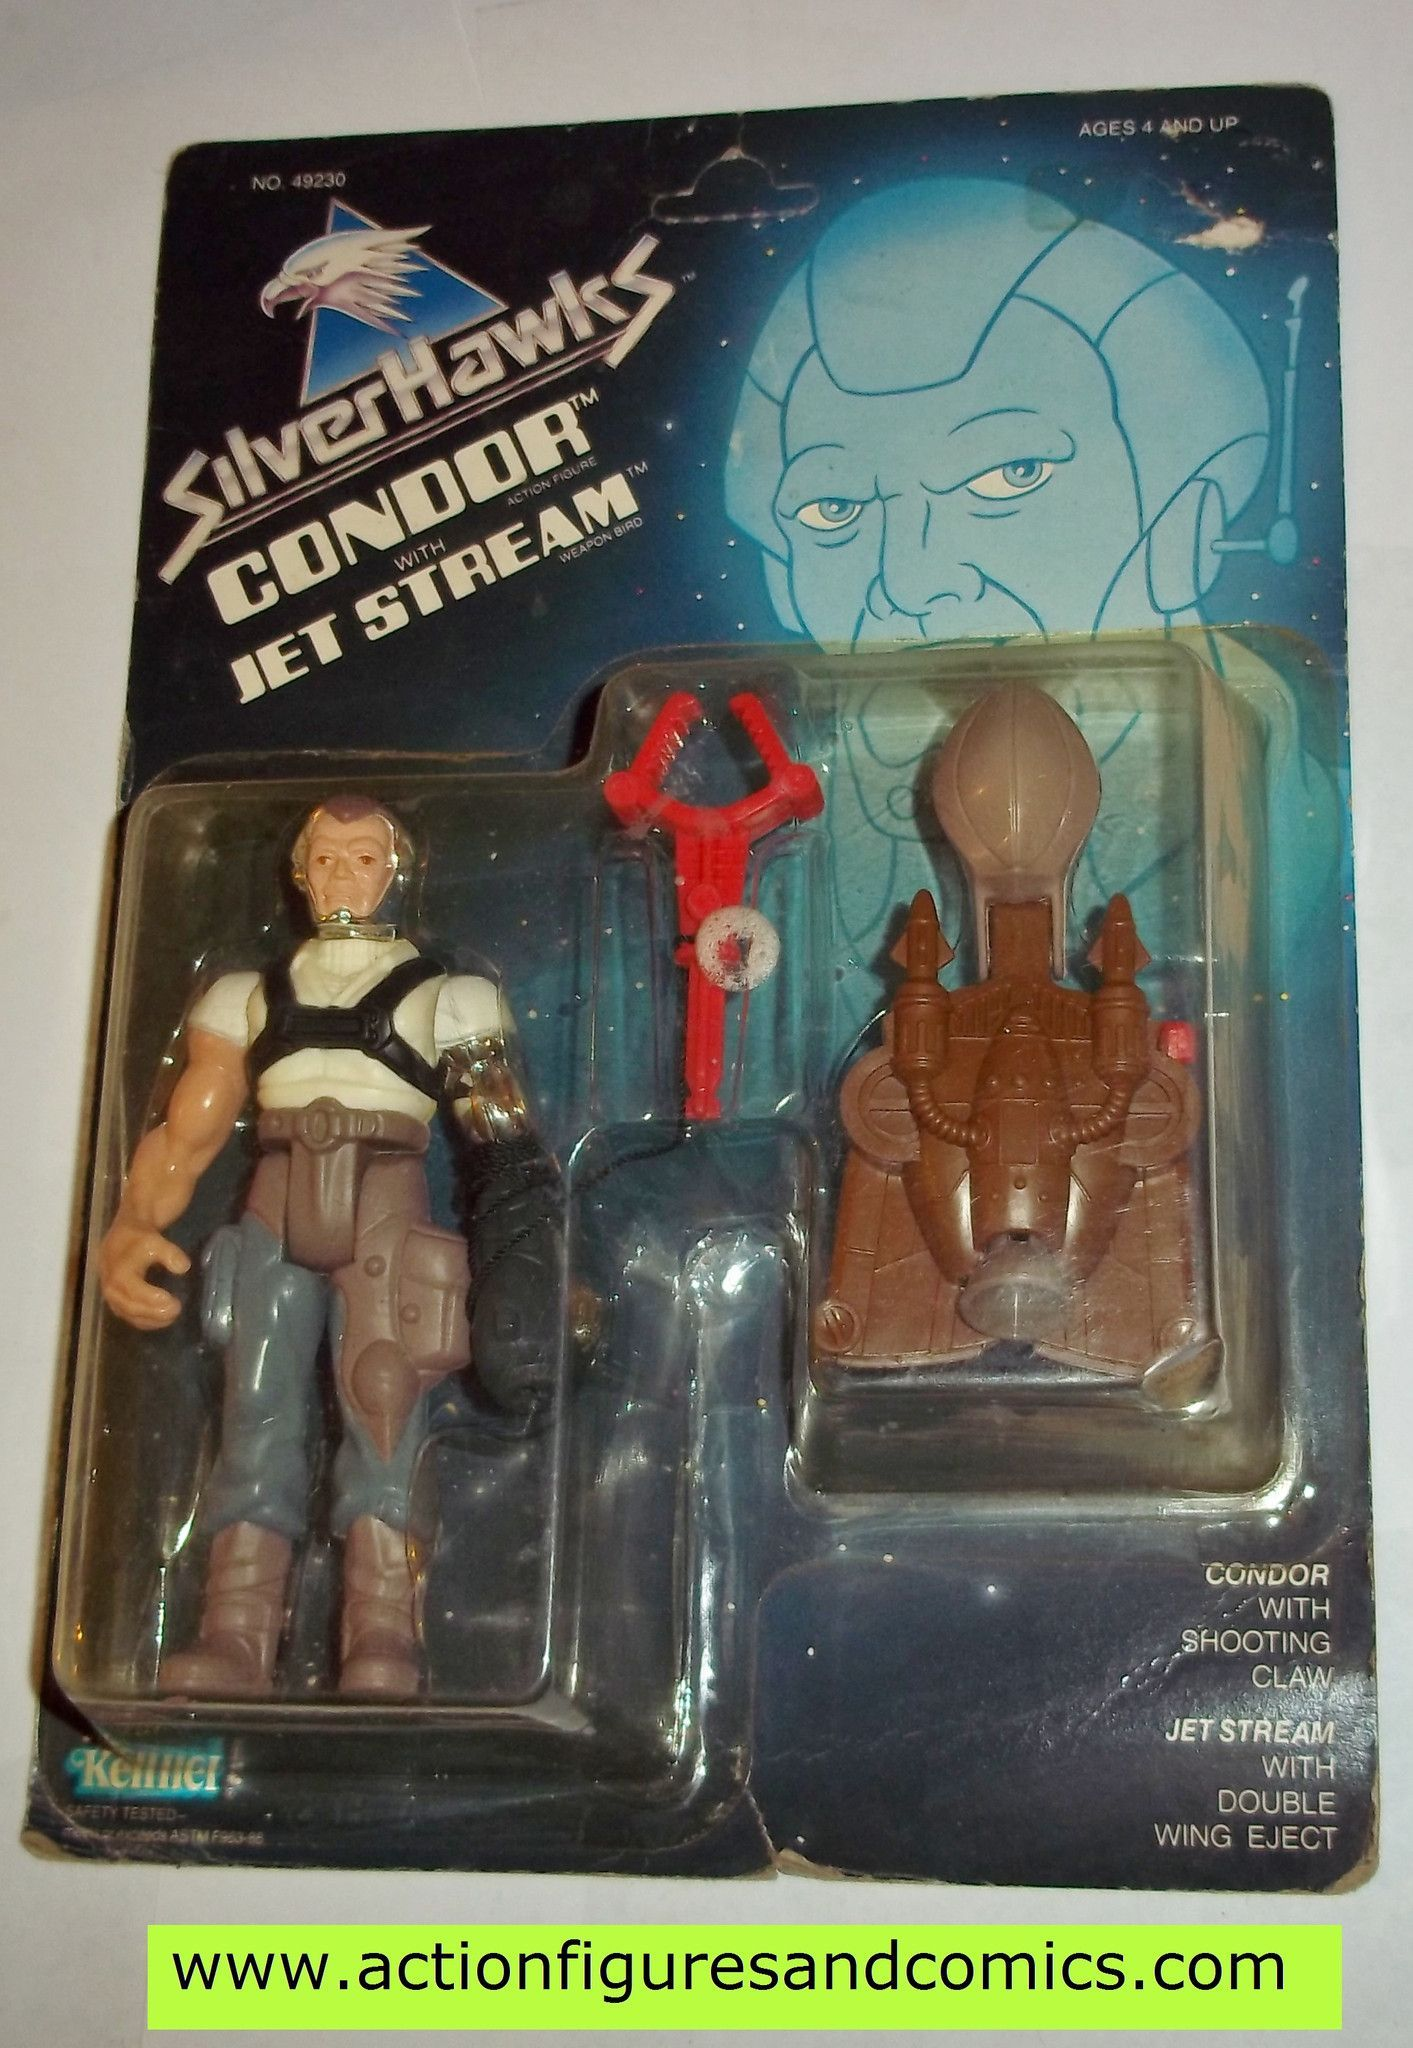 Claasic vintage toys vintage toys second shout out http www - Silverhawks Condor With Jet Stream 1987 Action Figure Moc Mip Mib Kenner